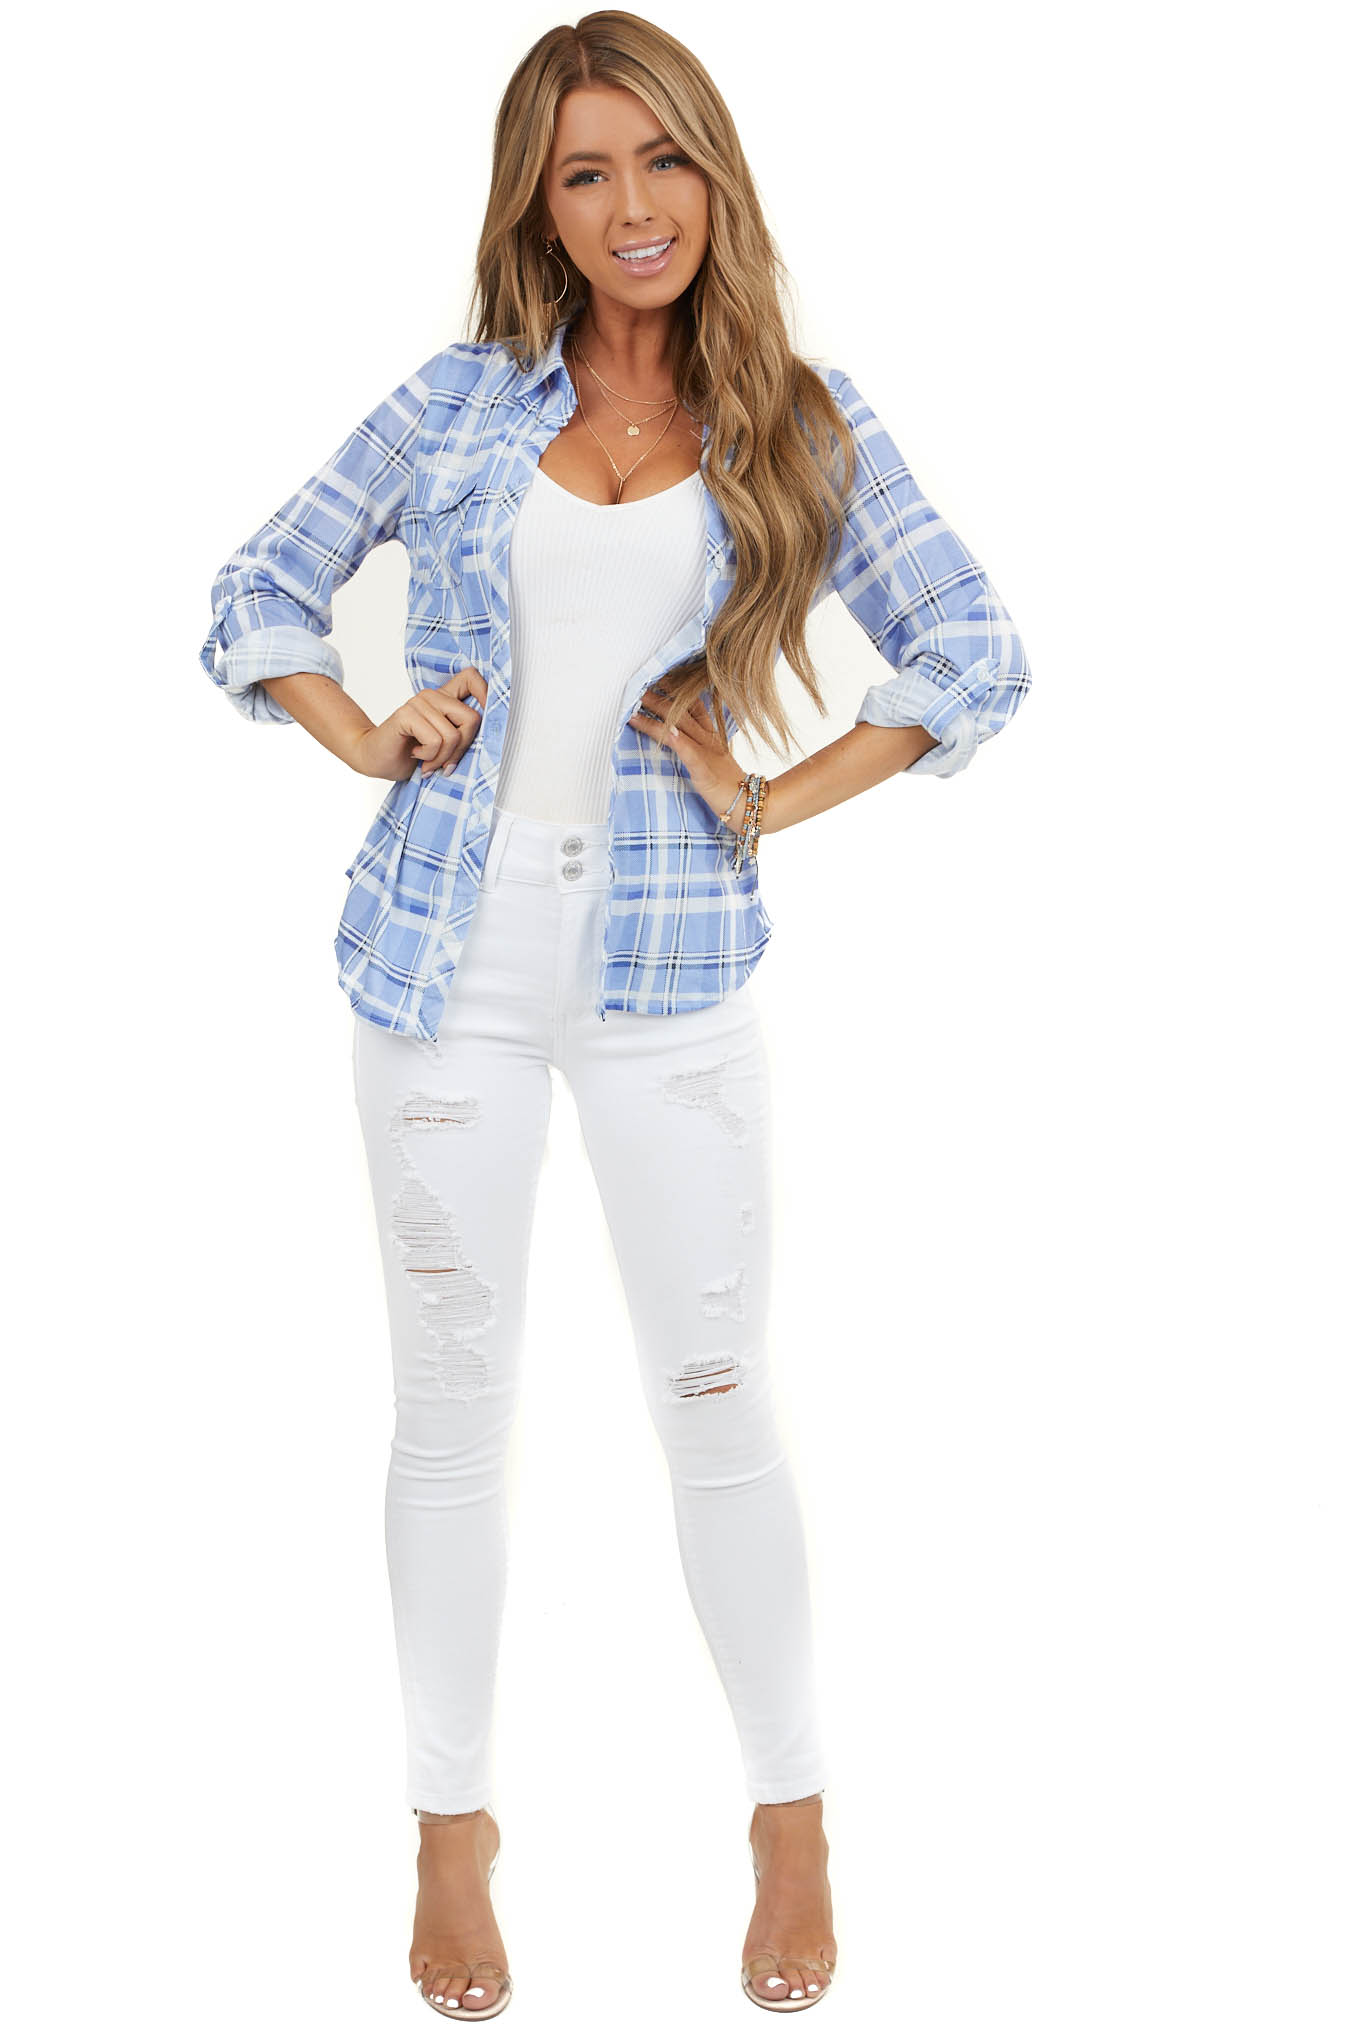 Powder Blue and White Plaid Button Up Top with Chest Pockets